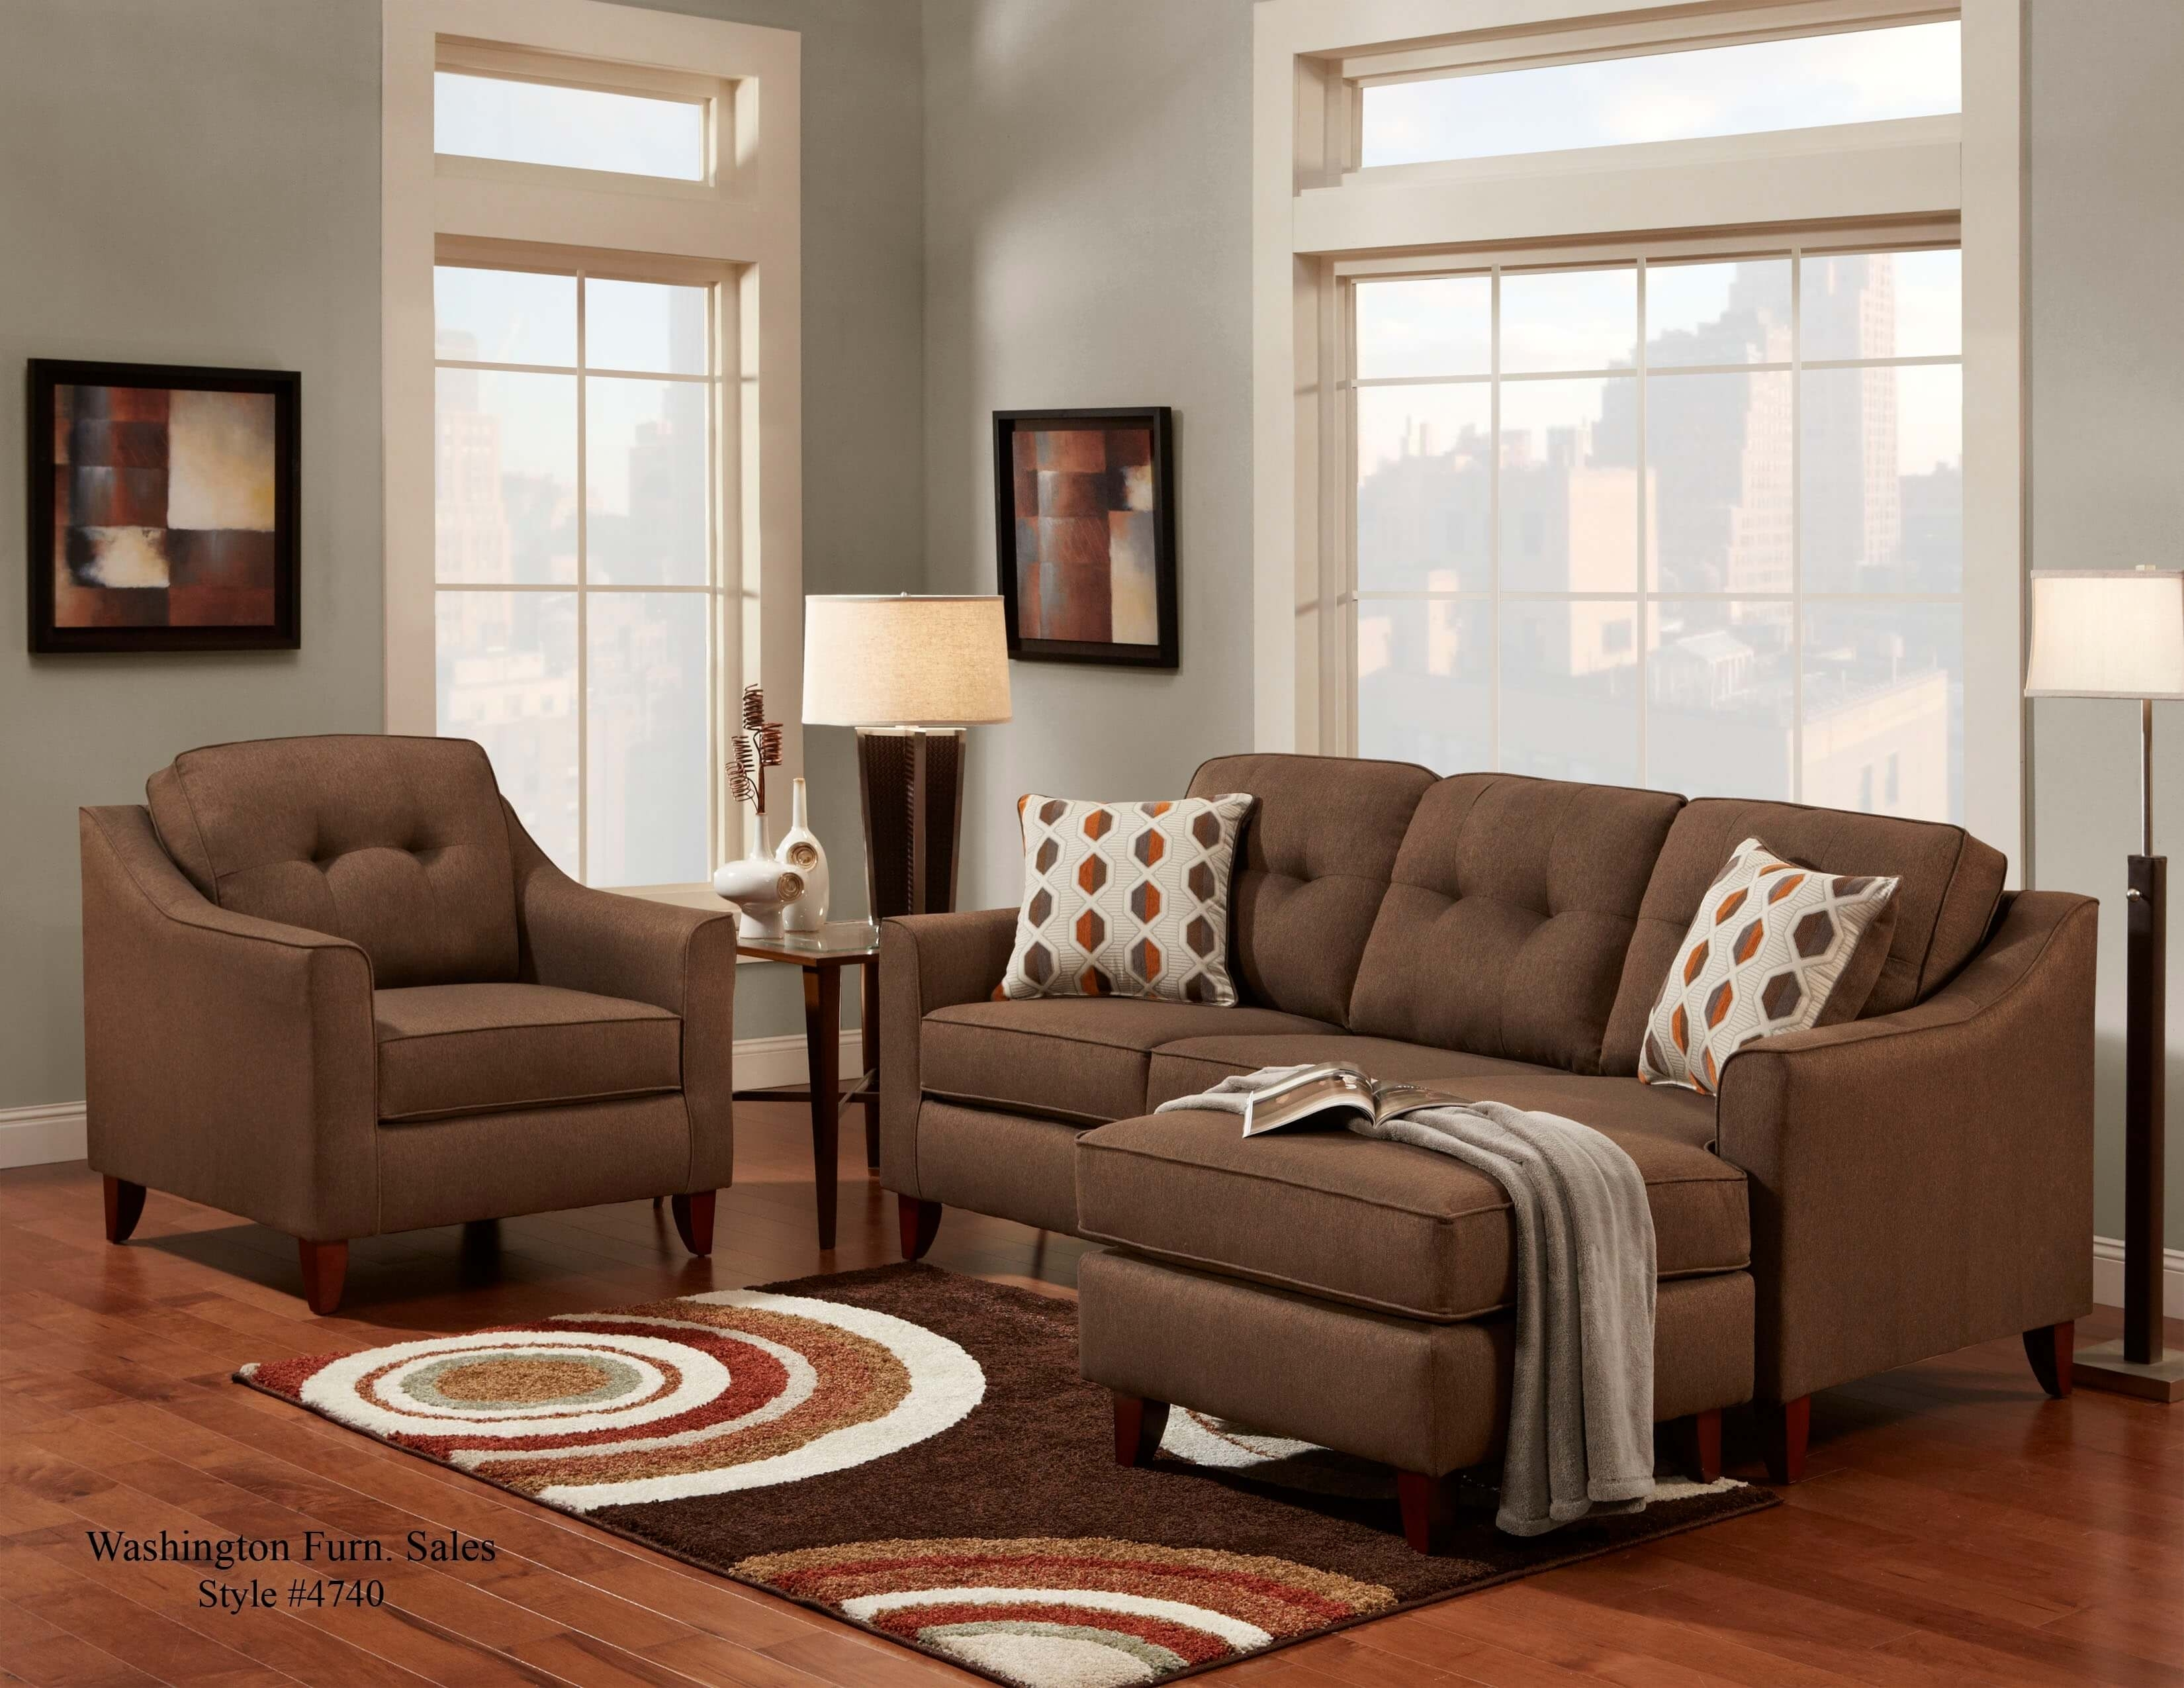 Stoked Chocolate Sofa/chaise | Sectional Sofa Sets within Chocolate Sectional Sofas (Image 14 of 15)